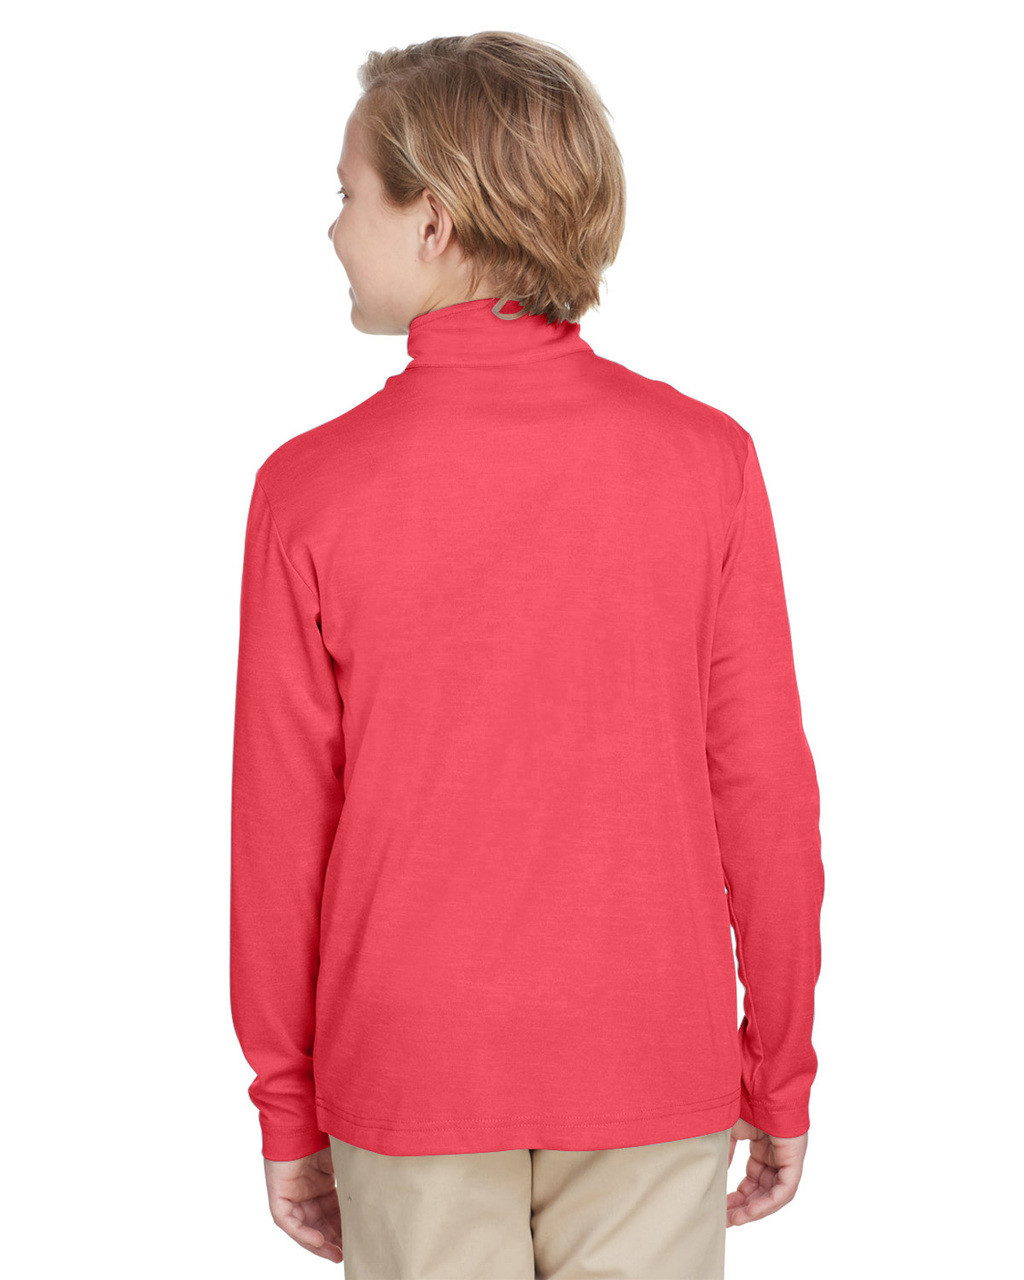 Sport Red Heather , Back - TT31HY Team 365 Youth Zone Sonic Heather Performance Quarter-Zip Athletic Shirt | BlankClothing.ca